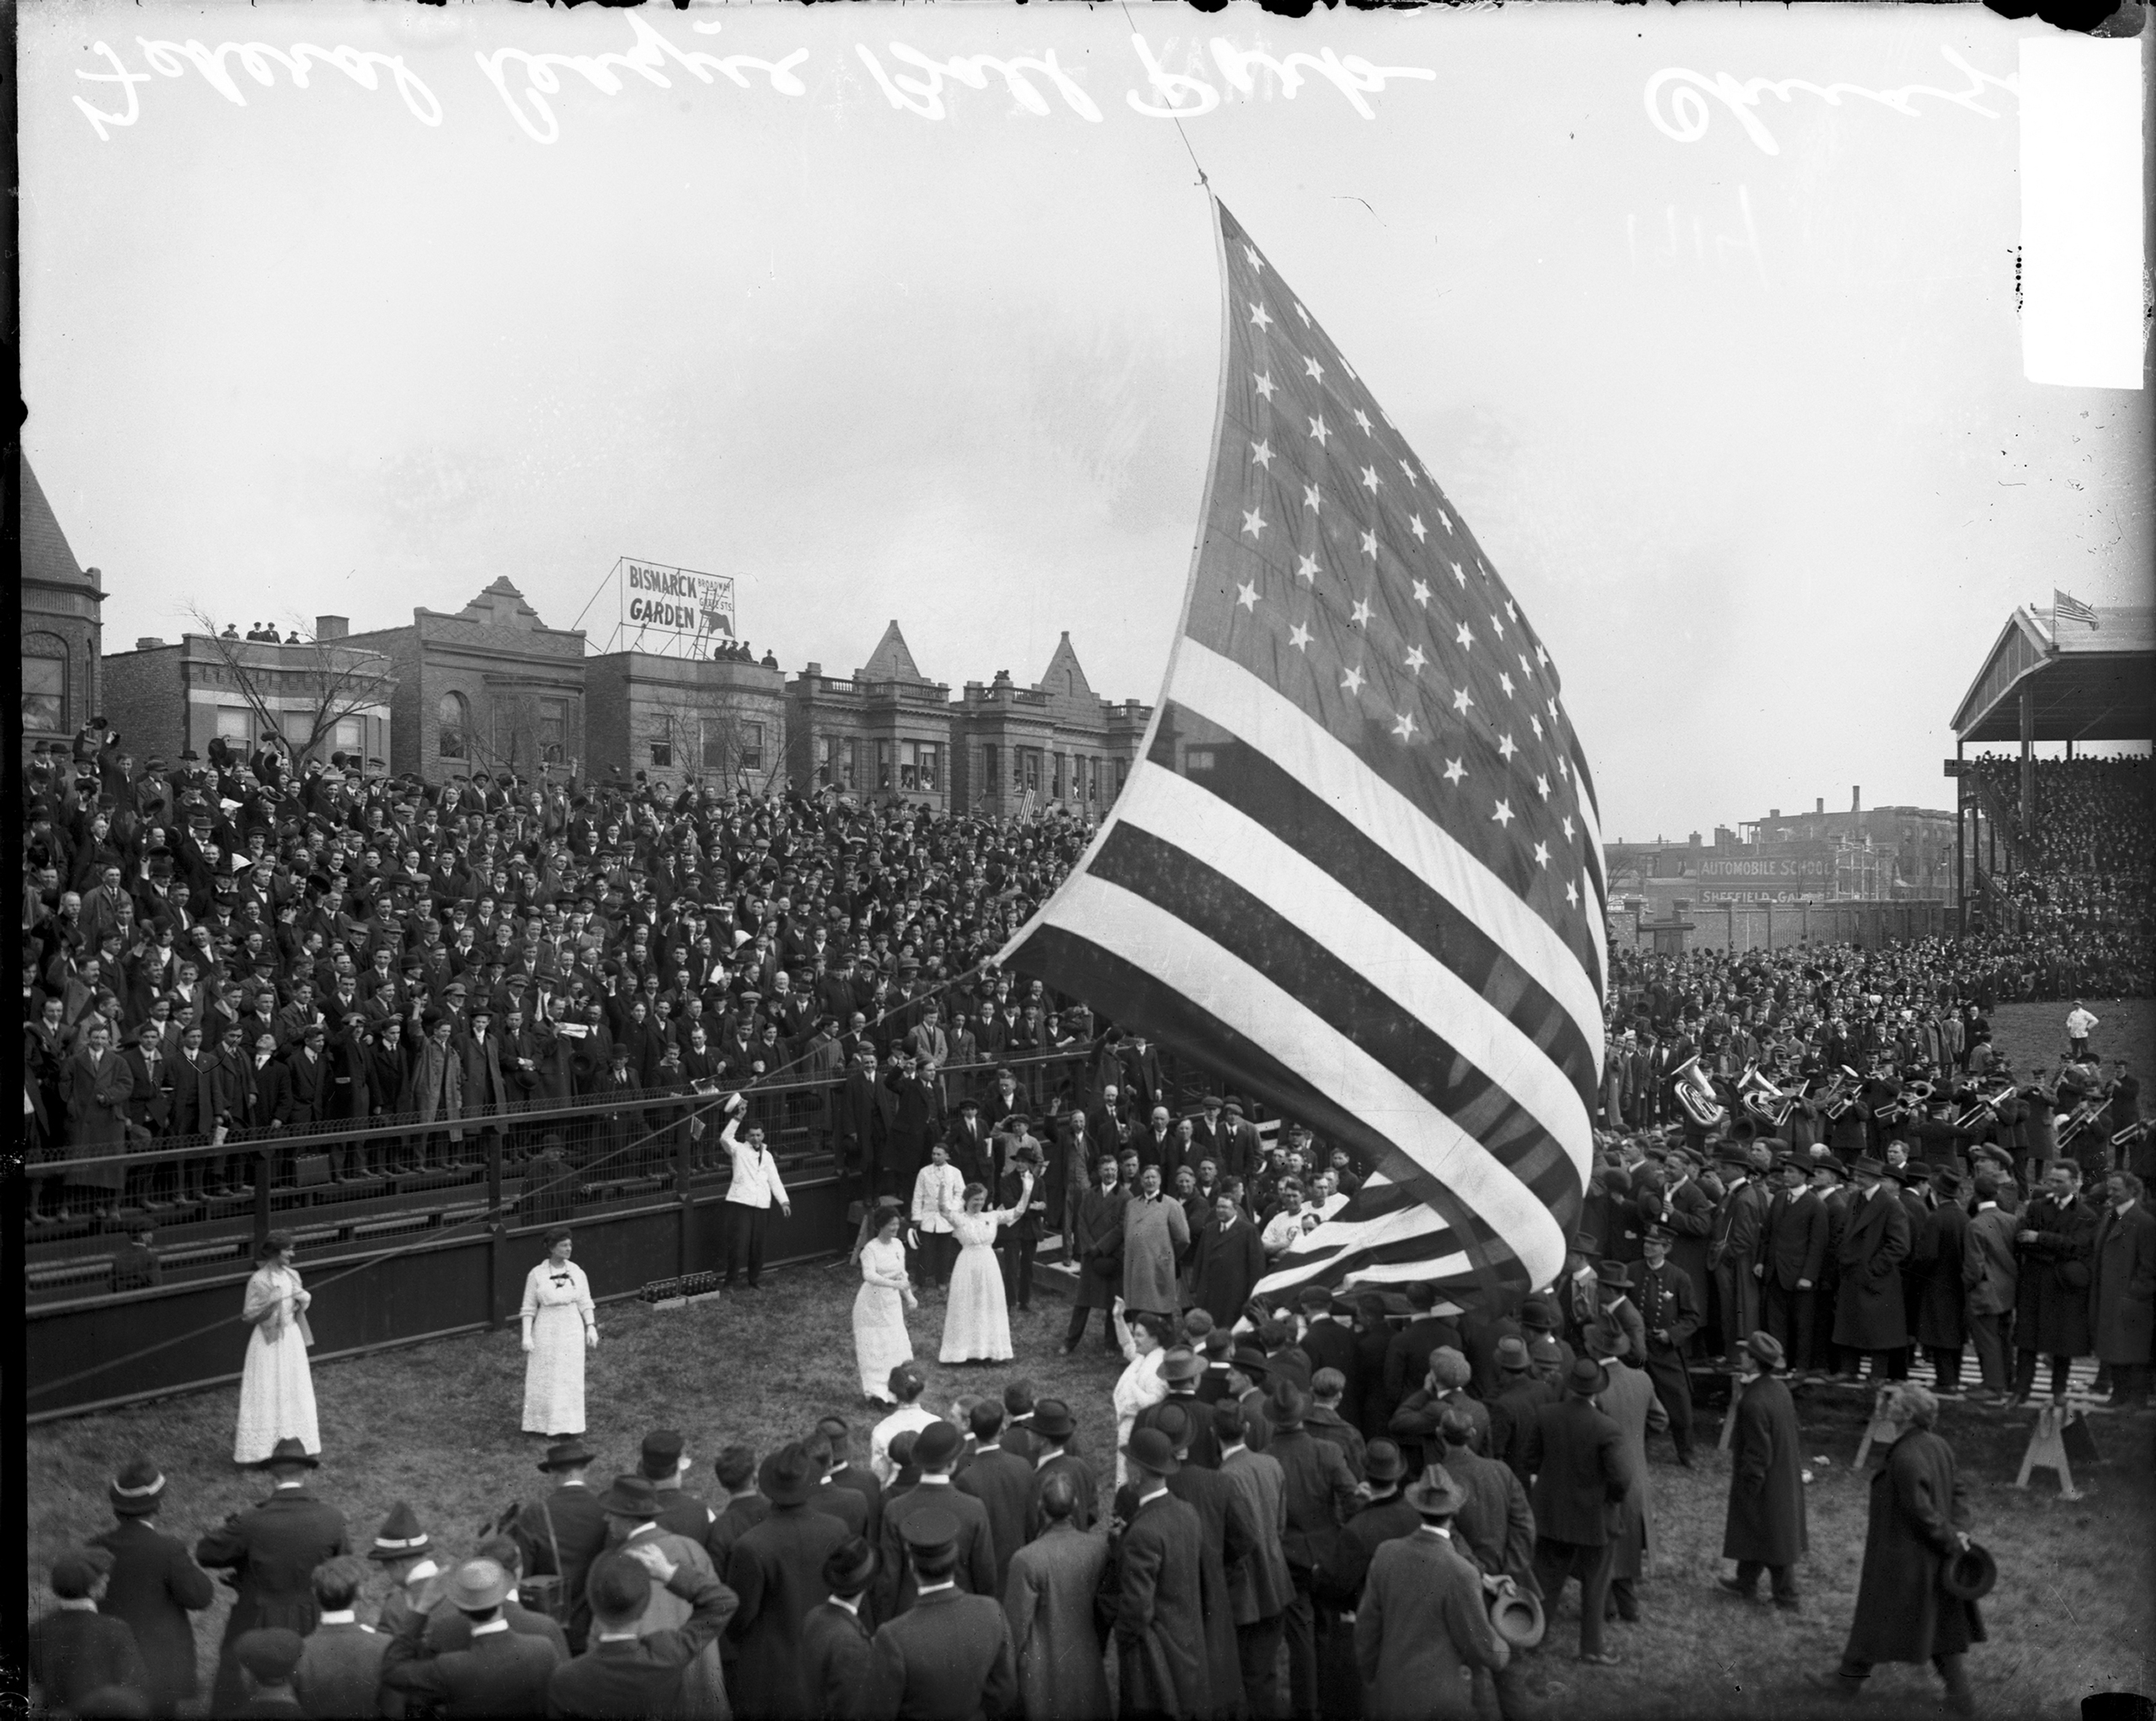 View of crowds standing on the field and in bleachers during a flag-raising ceremony at Weeghman Park, Chicago, 1914.